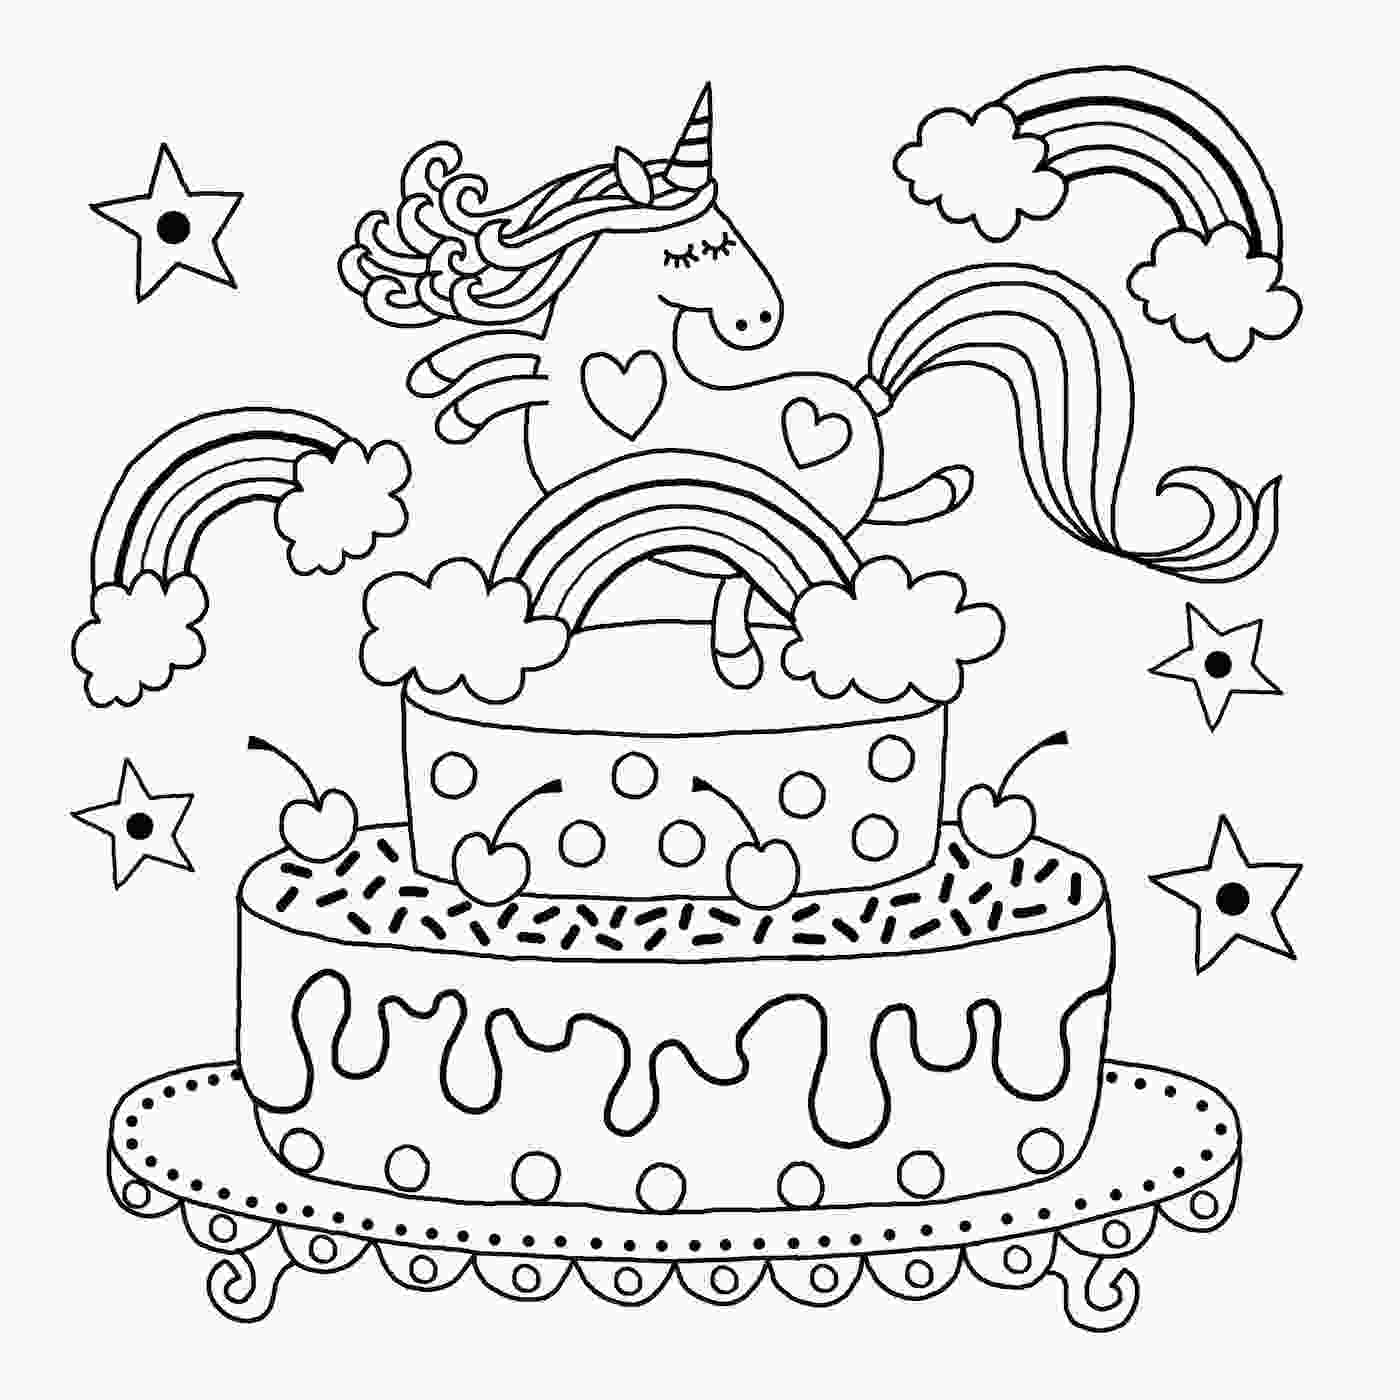 unicorn cupcake coloring pages beautiful unicorn cake coloring pages printable pulpenku